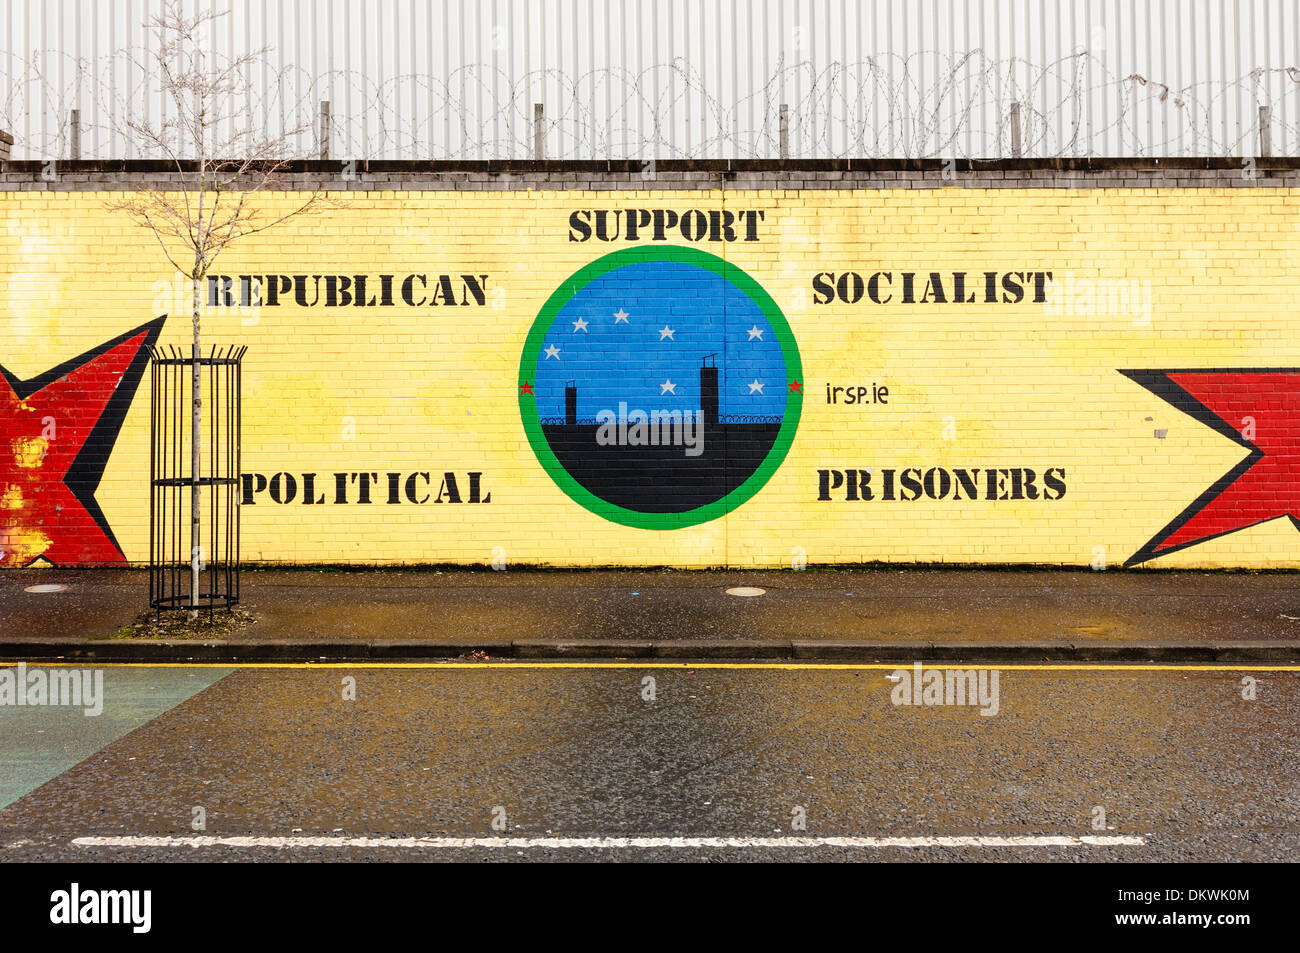 Mural at the International Peace Wall, Belfast for the Irish Republican Socialist Party. - Stock Image